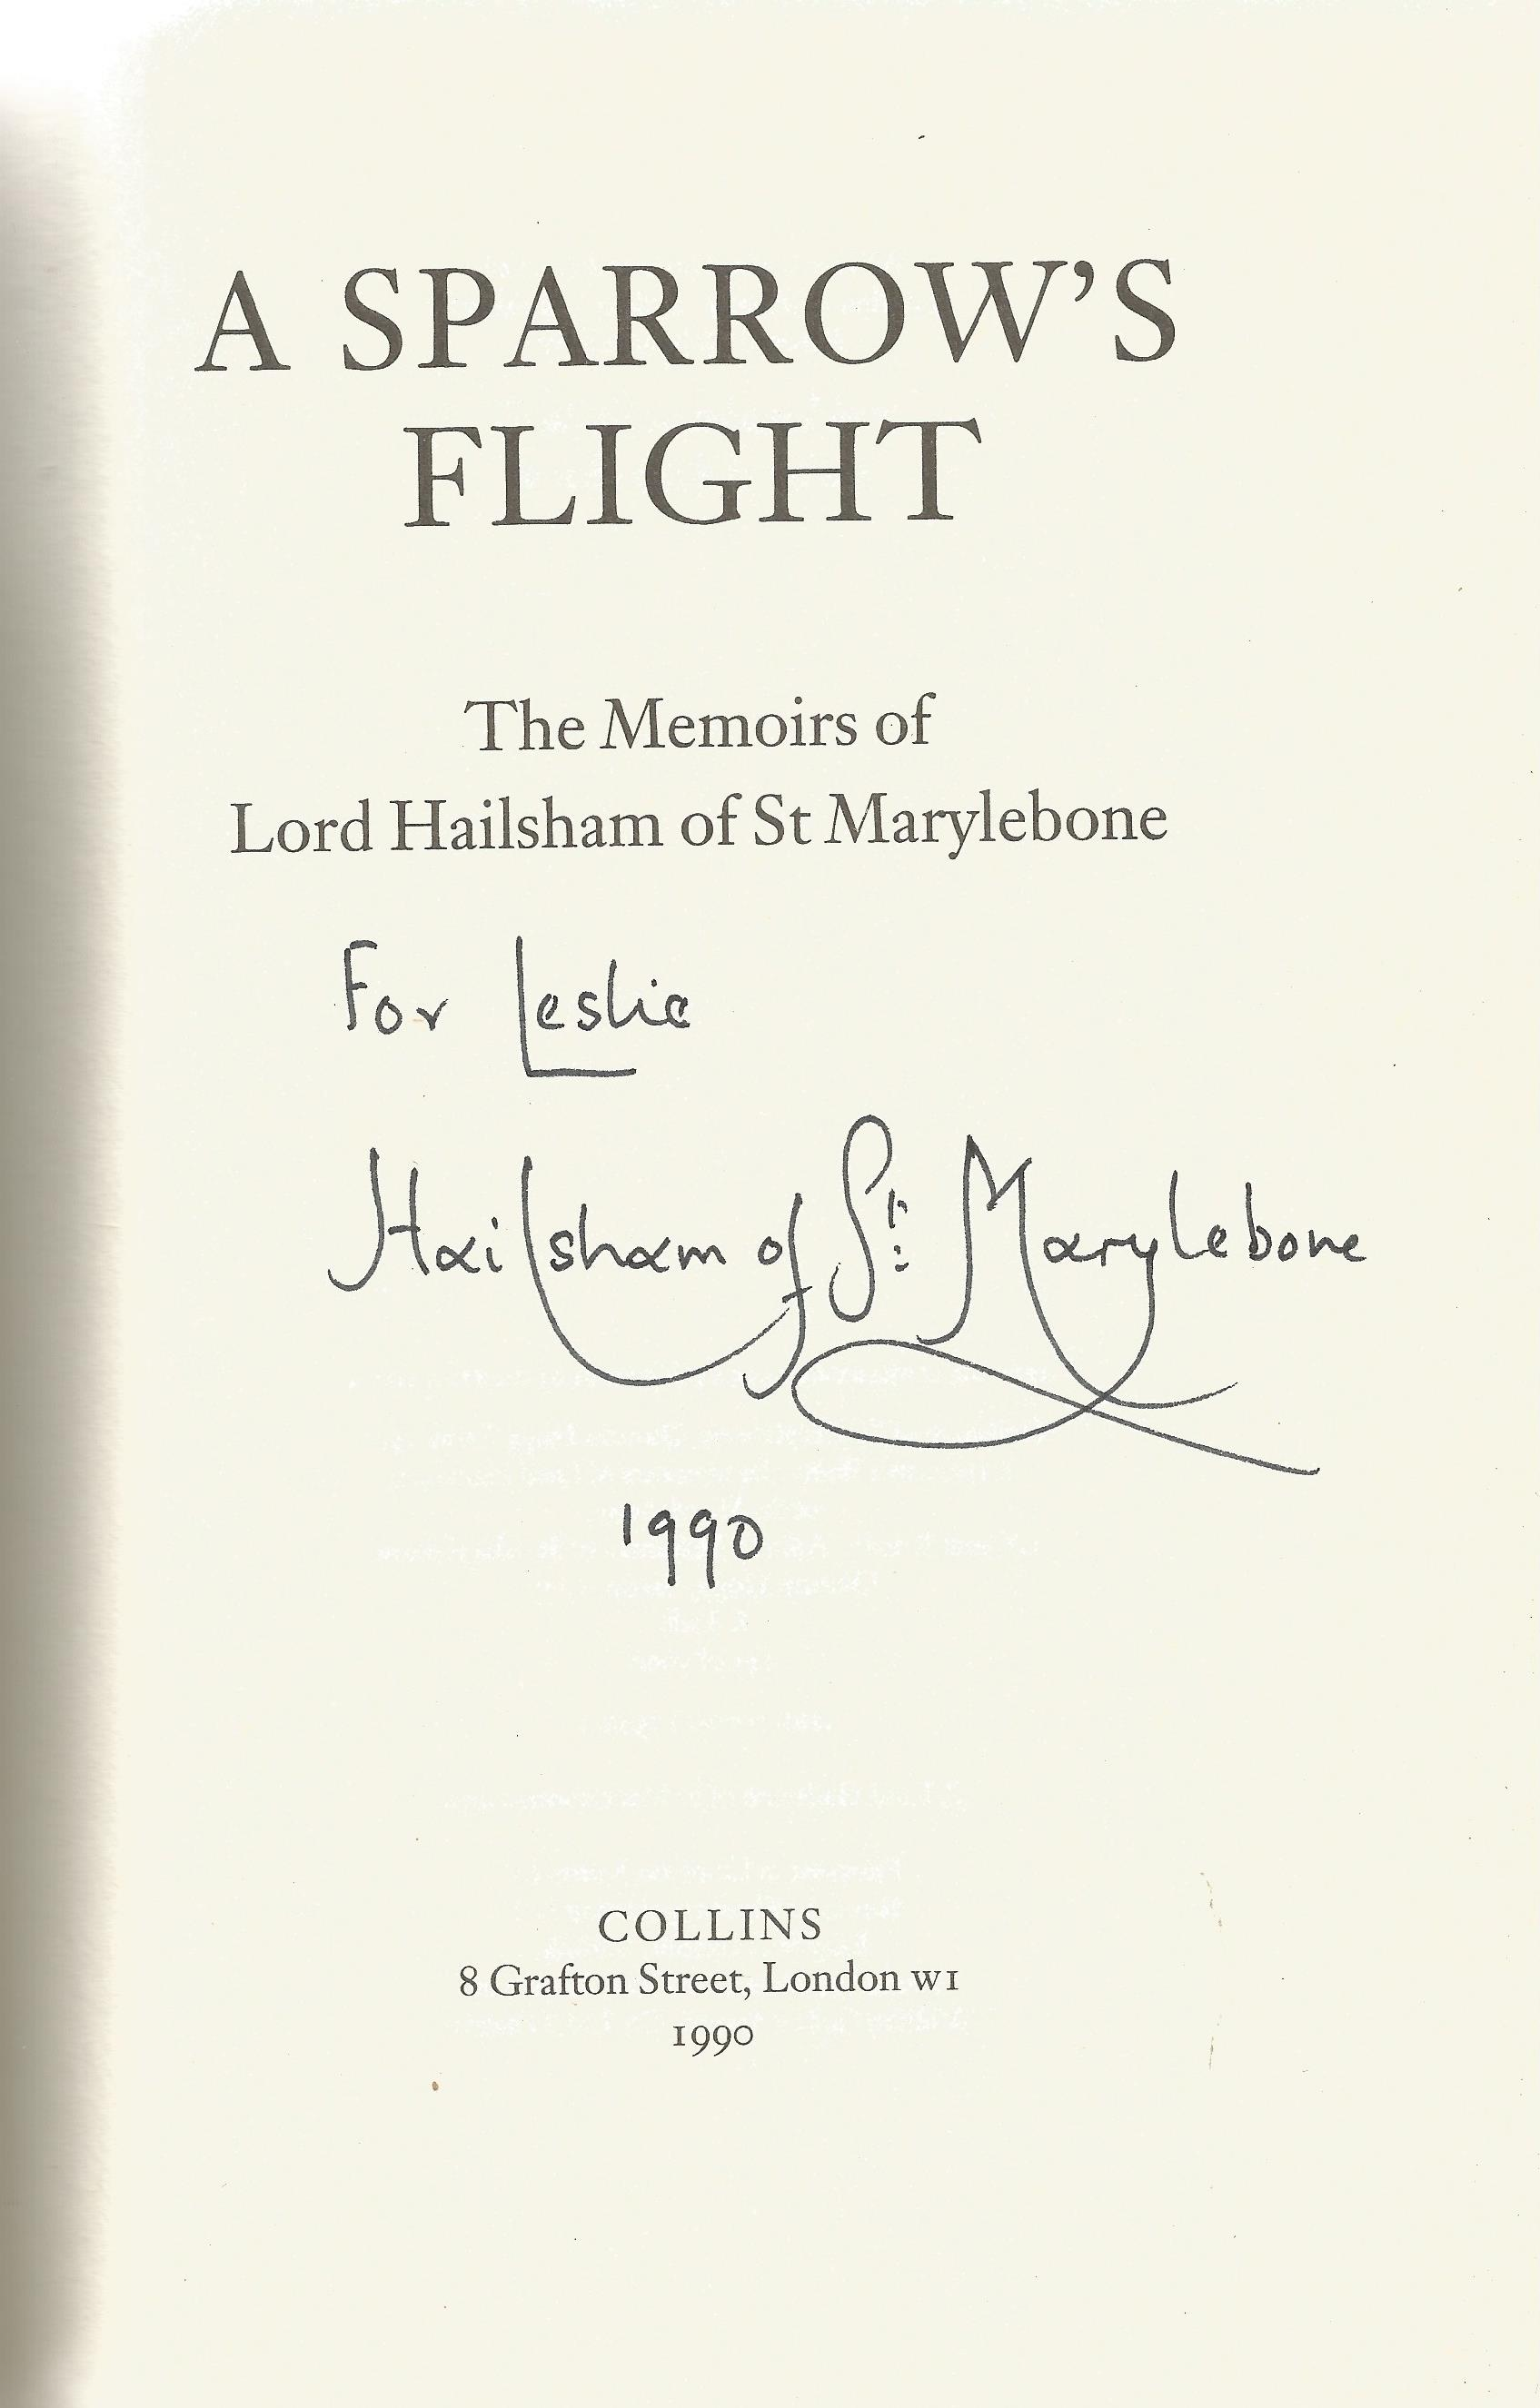 Lord Hailsham Hardback Book A Sparrow's Flight Memoirs signed by the Author on the Title Page - Image 2 of 2